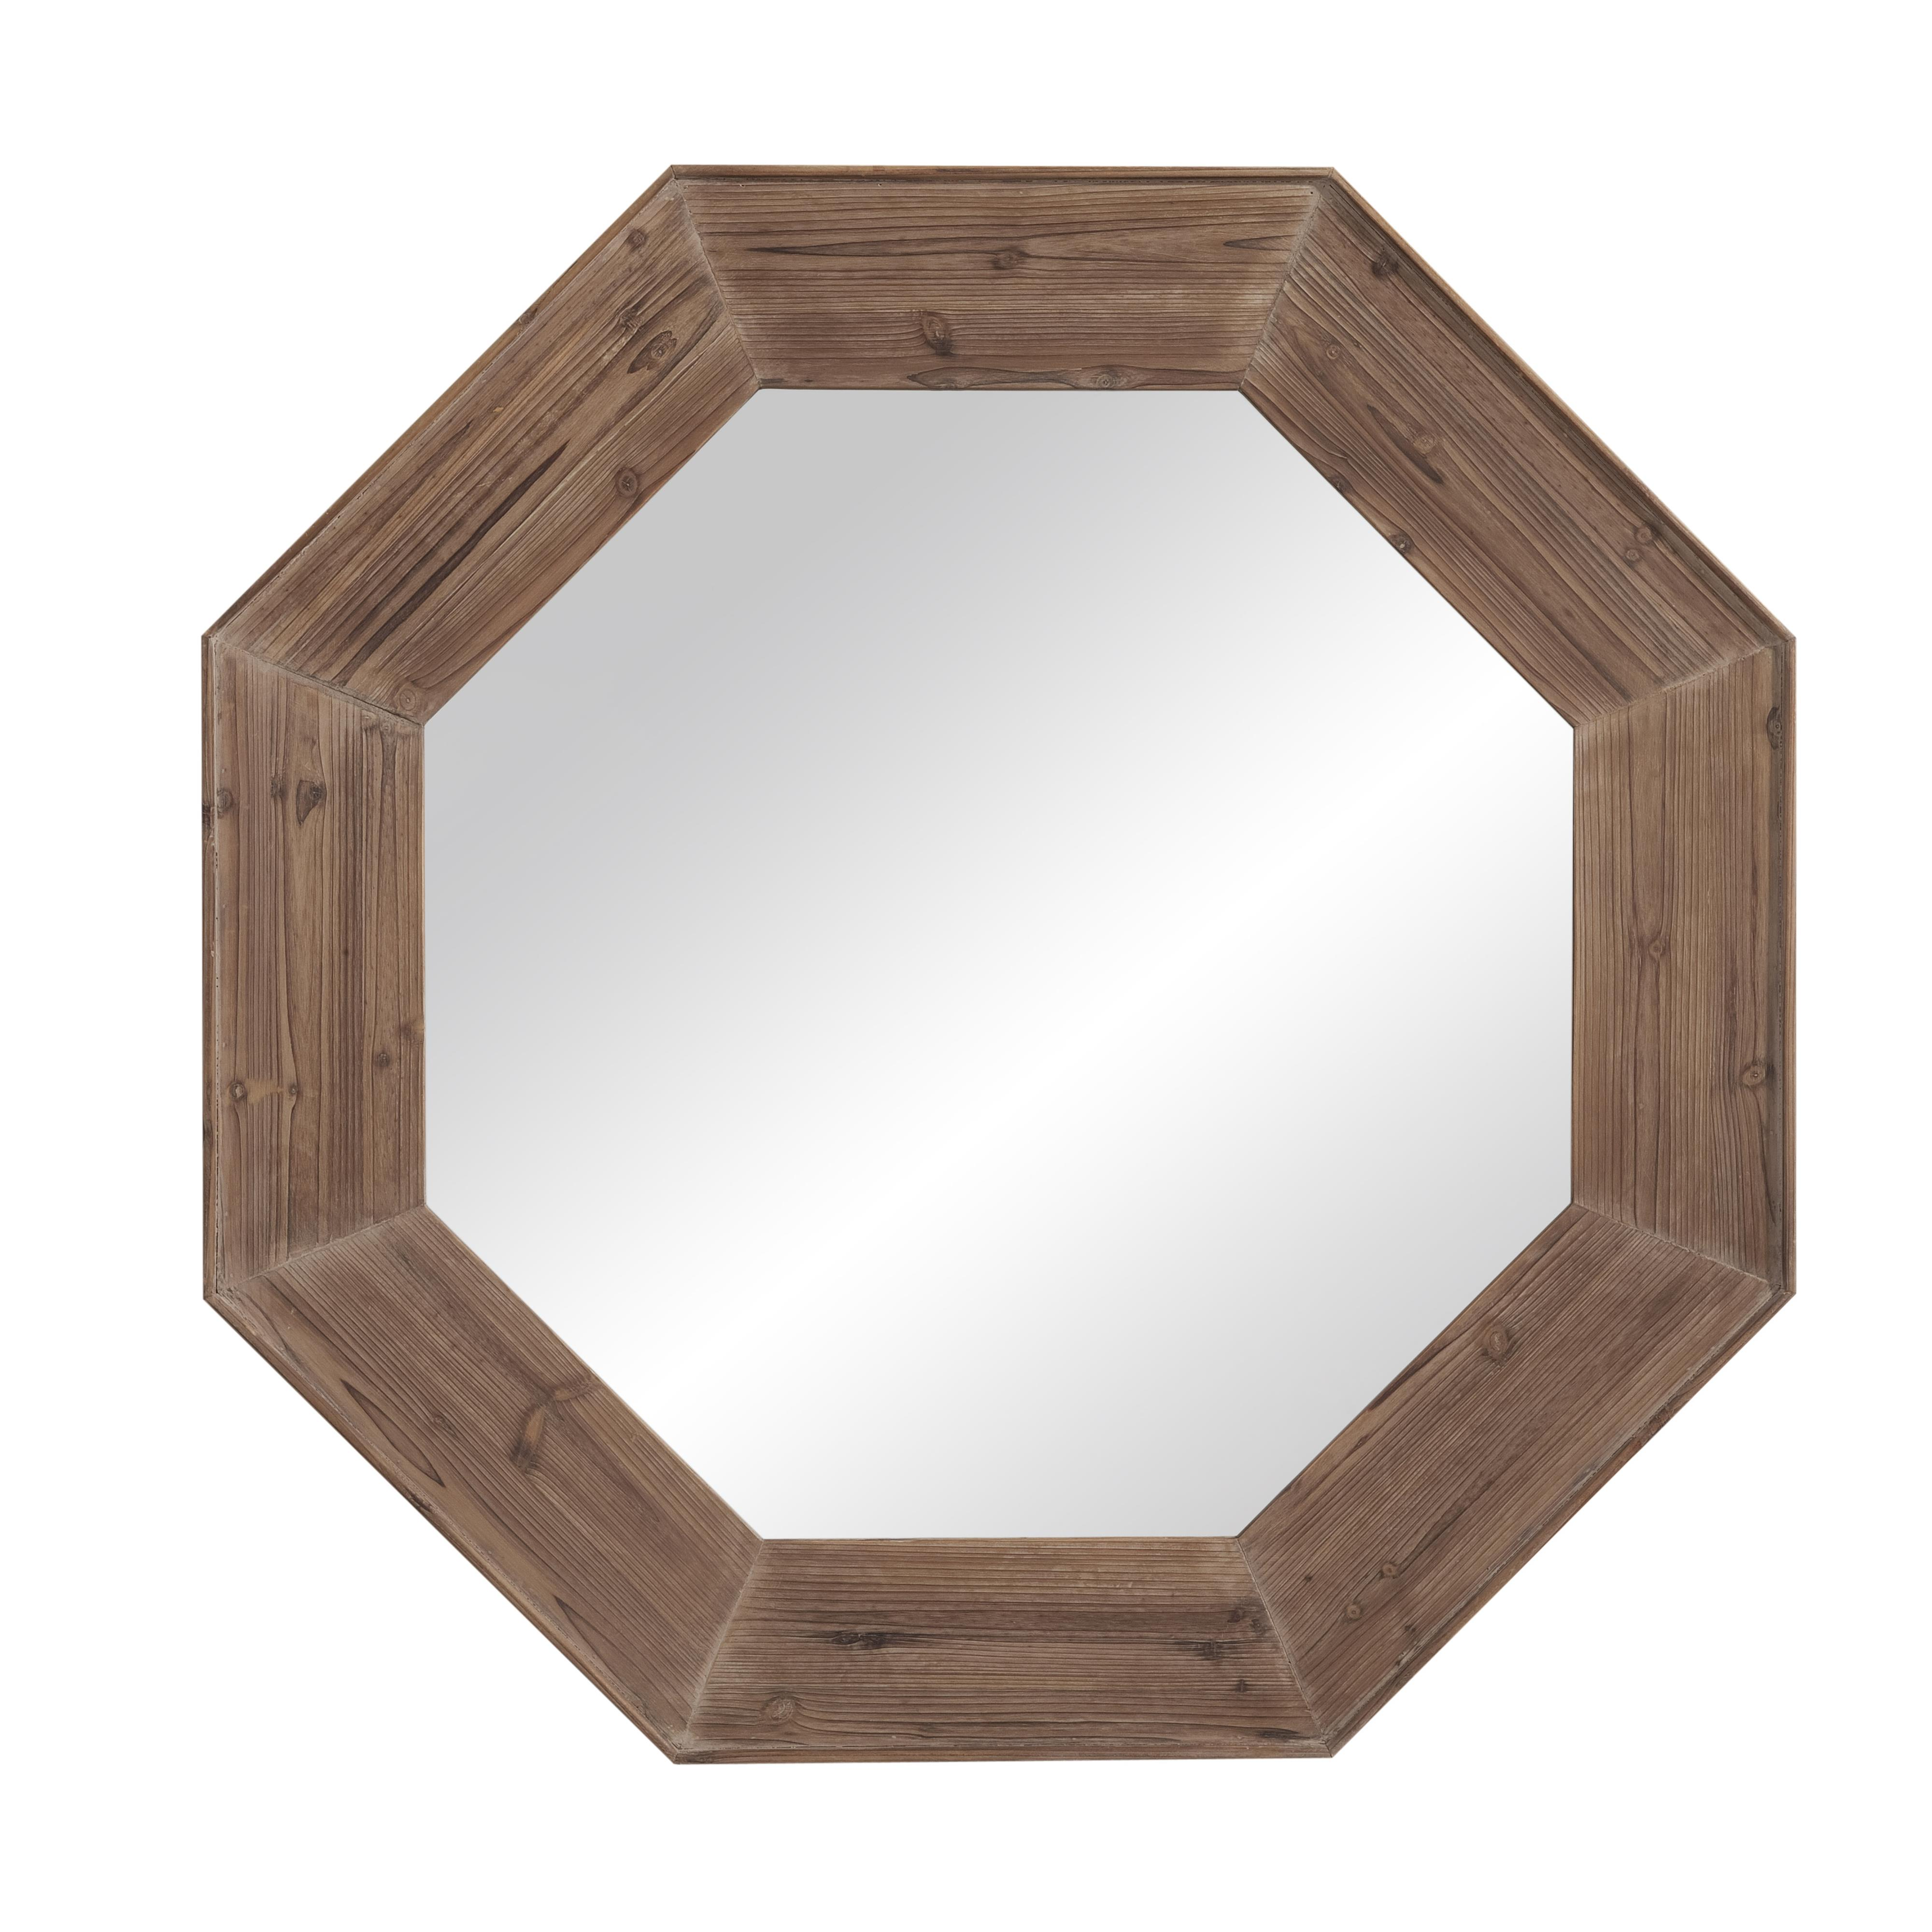 Belgian Luxe Granby Wall Mirror by Bassett Mirror at Alison Craig Home Furnishings